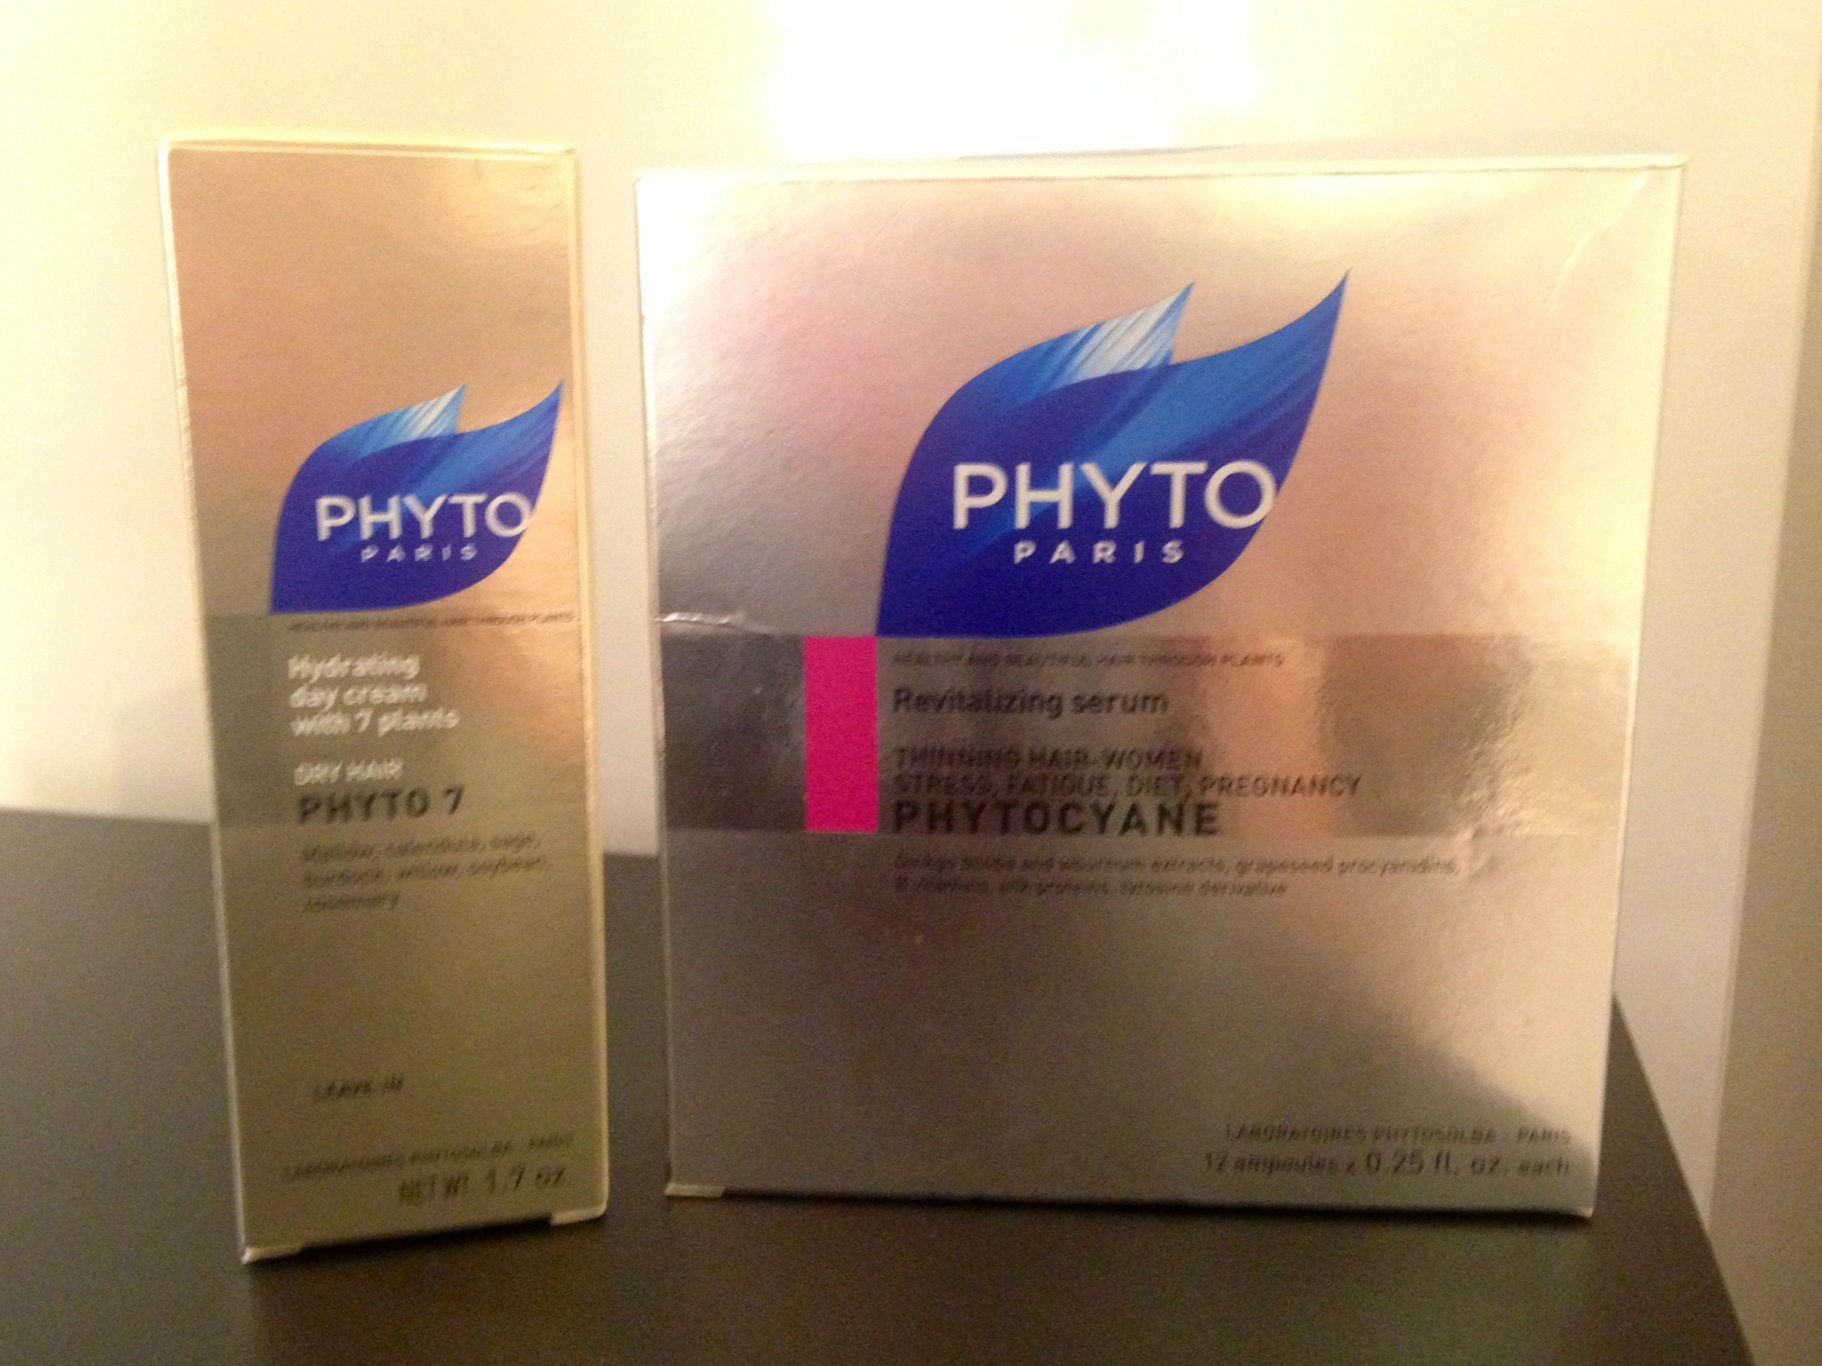 Phyto 7 is kinda like Moisturizer for your hair